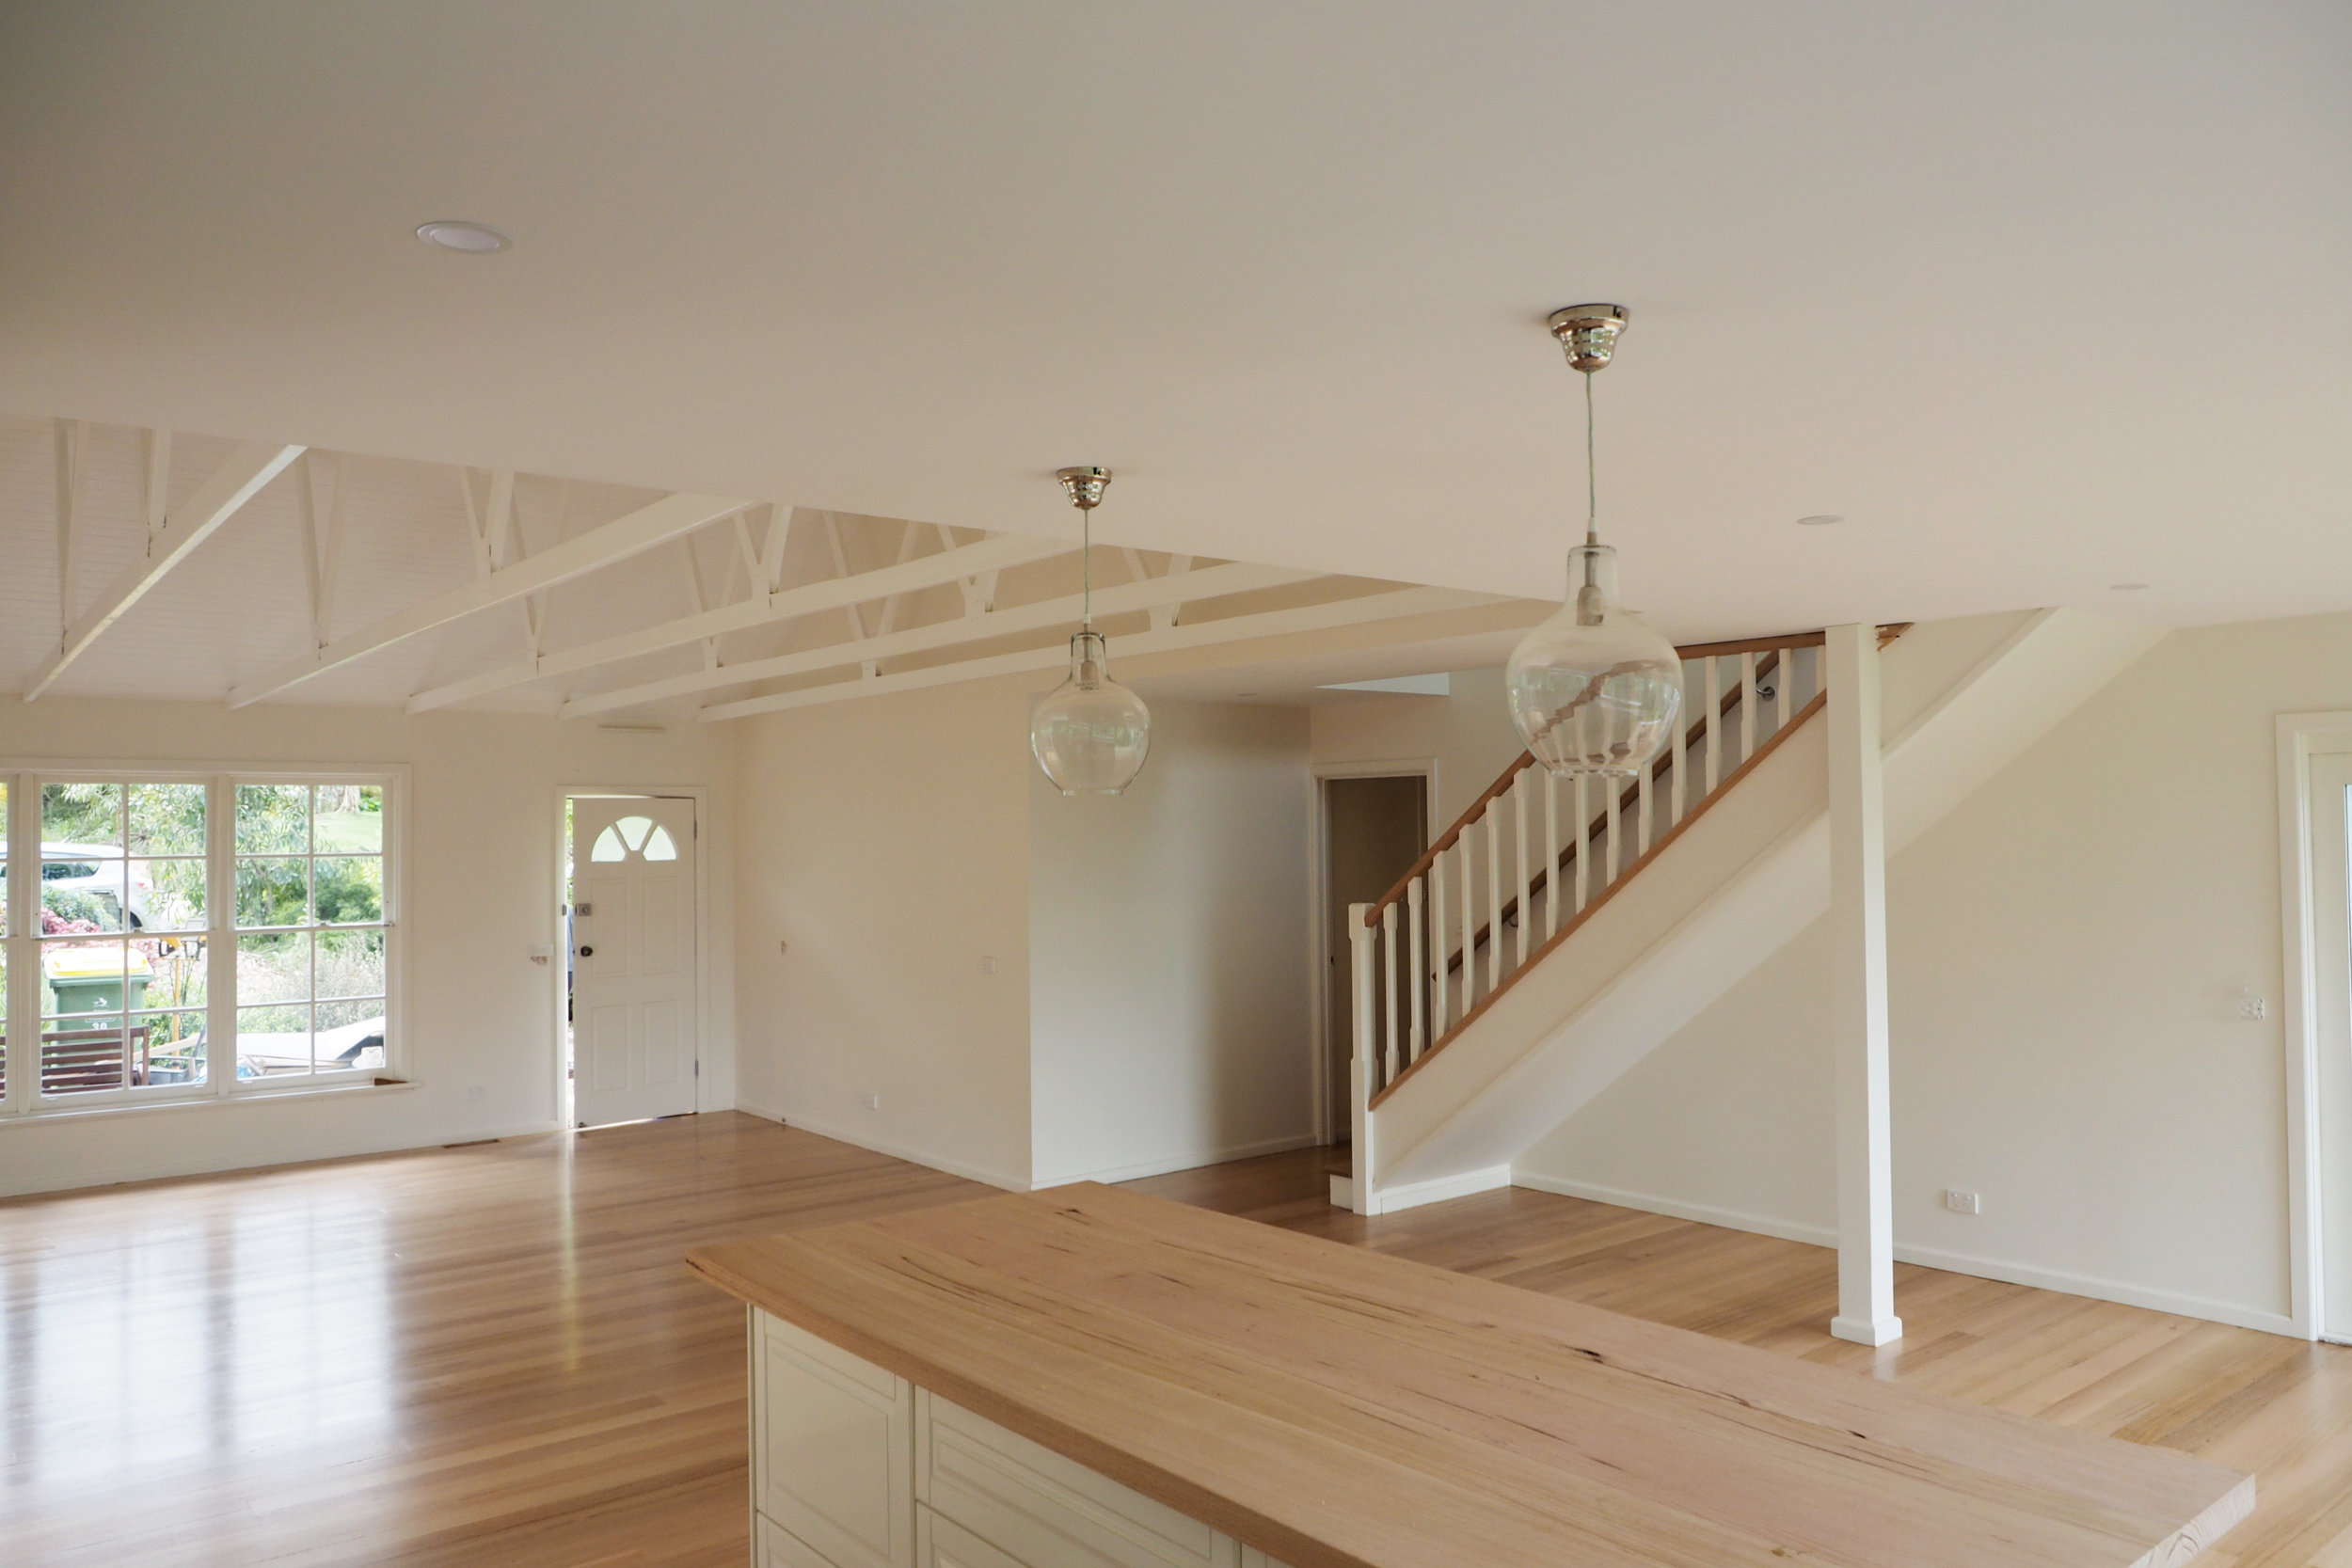 Newly renovated house with exposed beamsThe Organised You